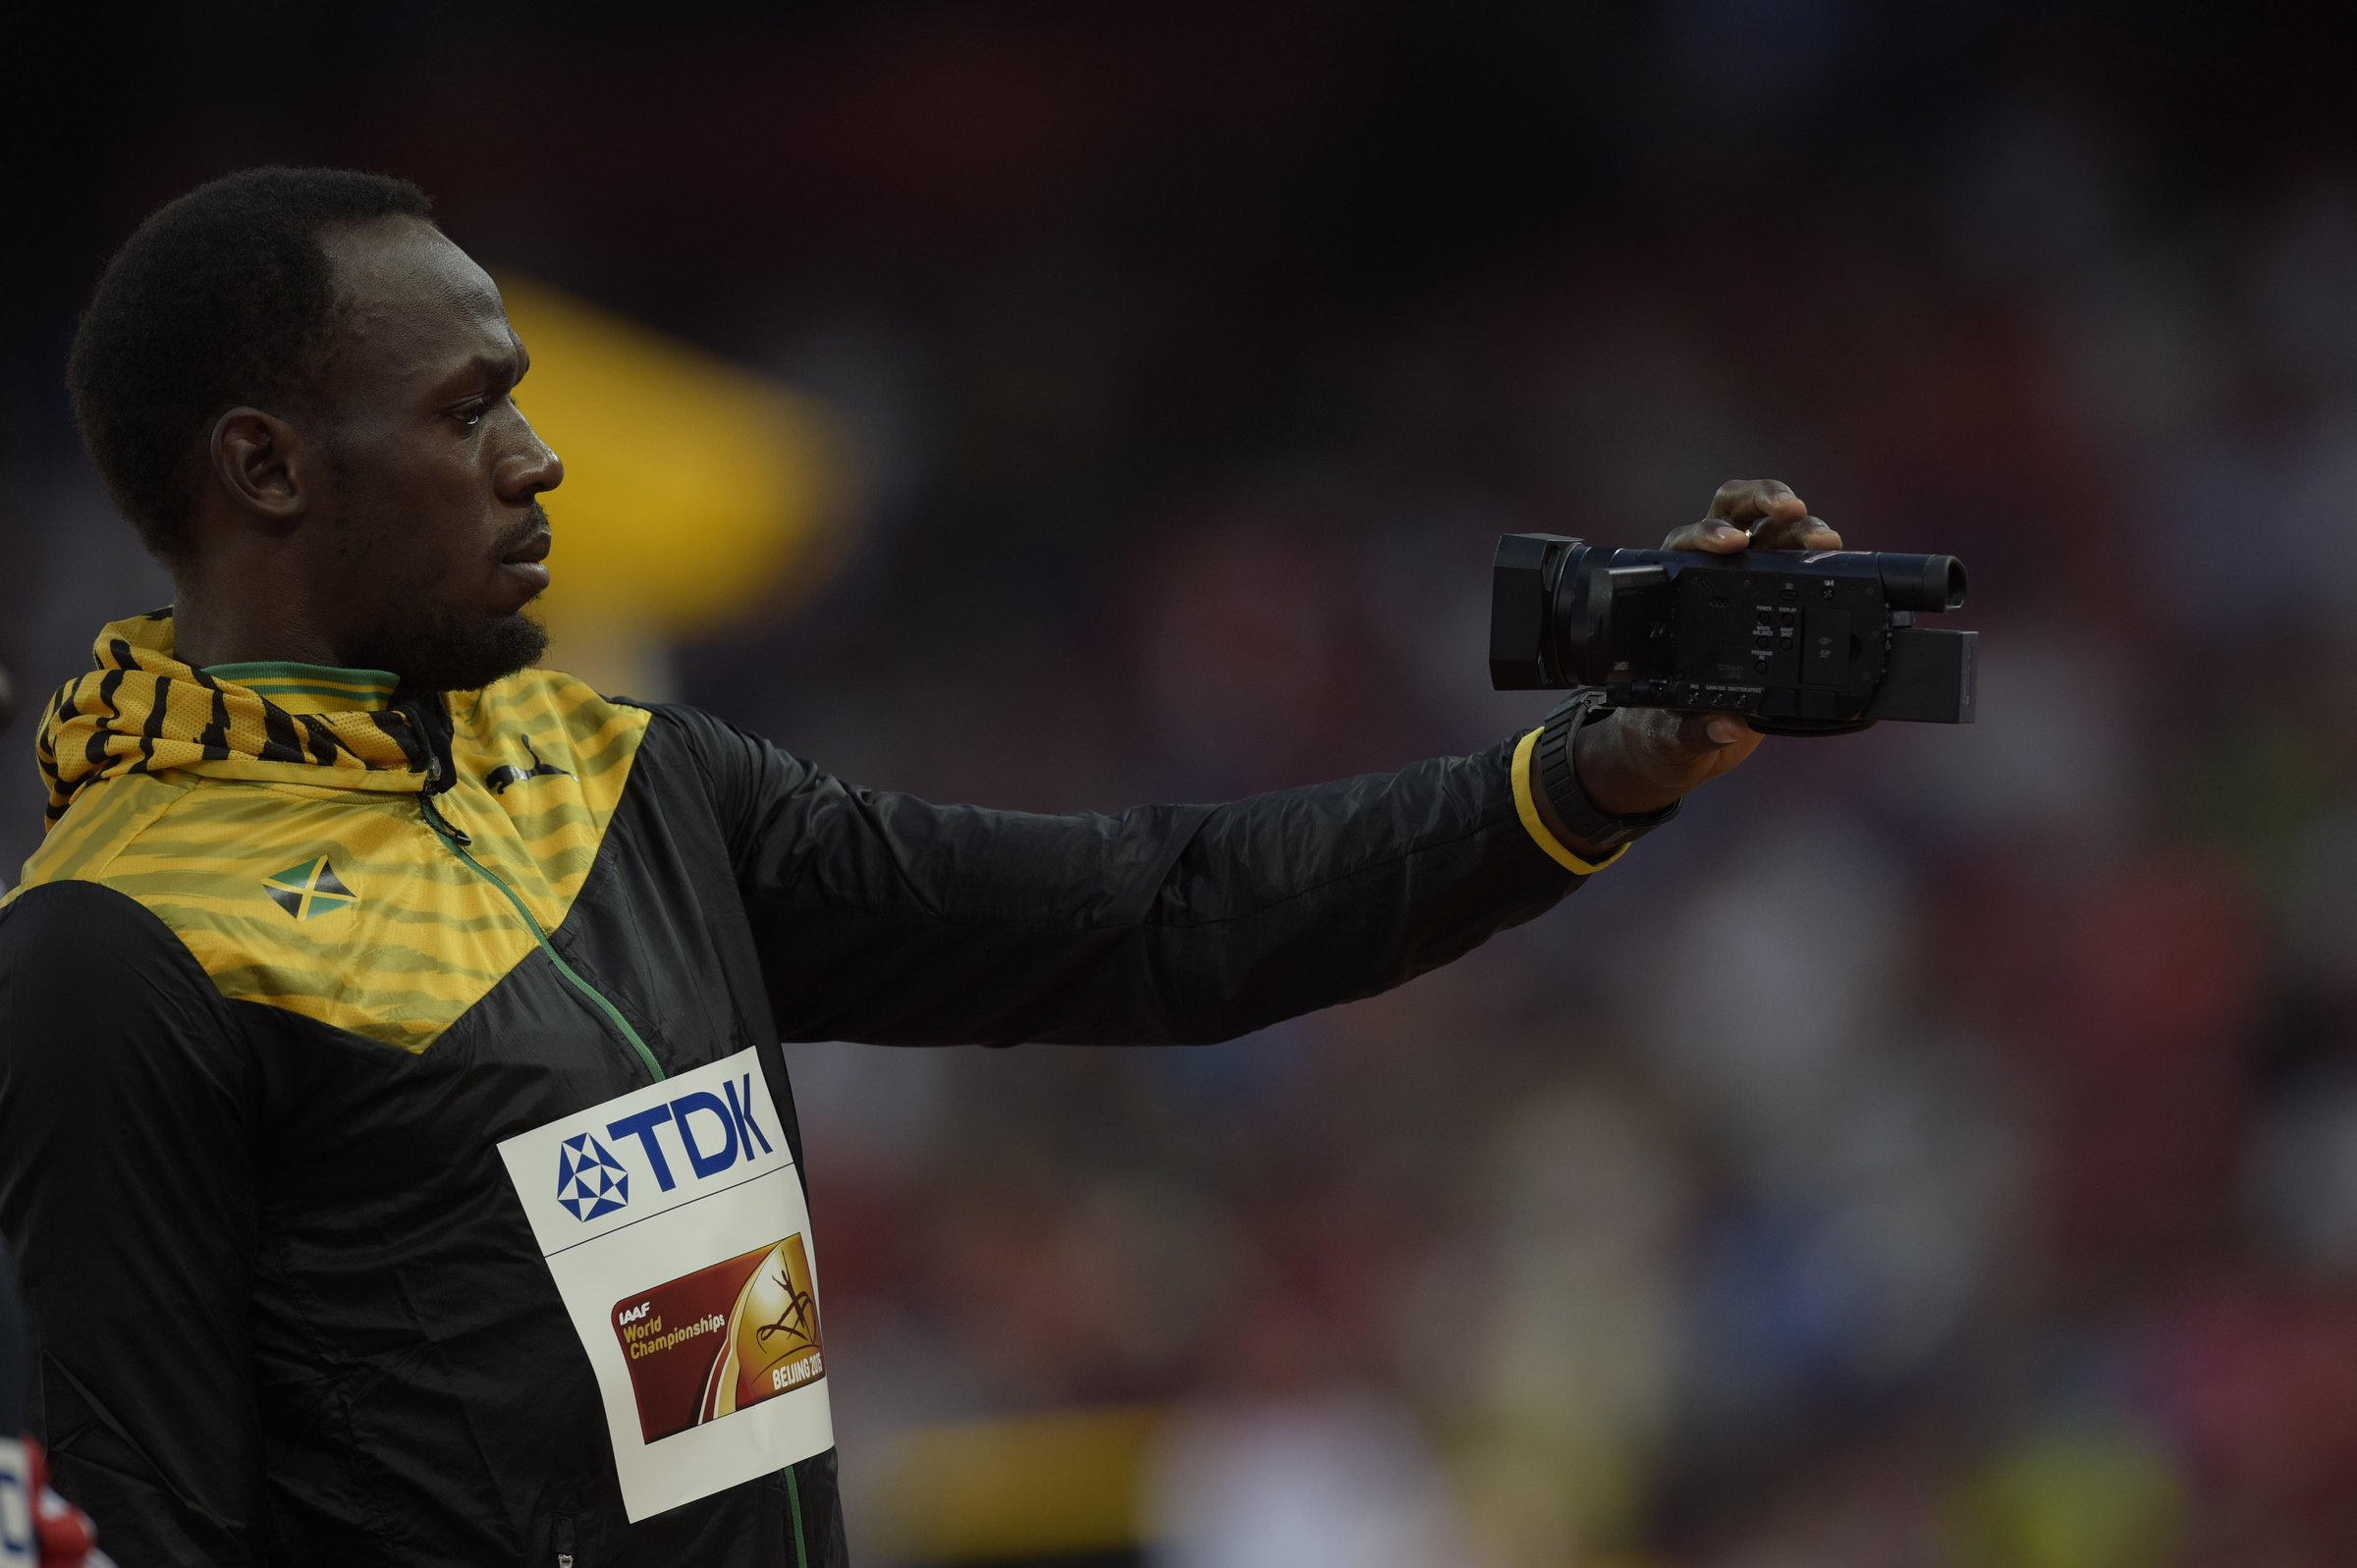 Usain Bolt (JAM) gold videotaping on the podium before the men's 100-meter dash award ceremony.